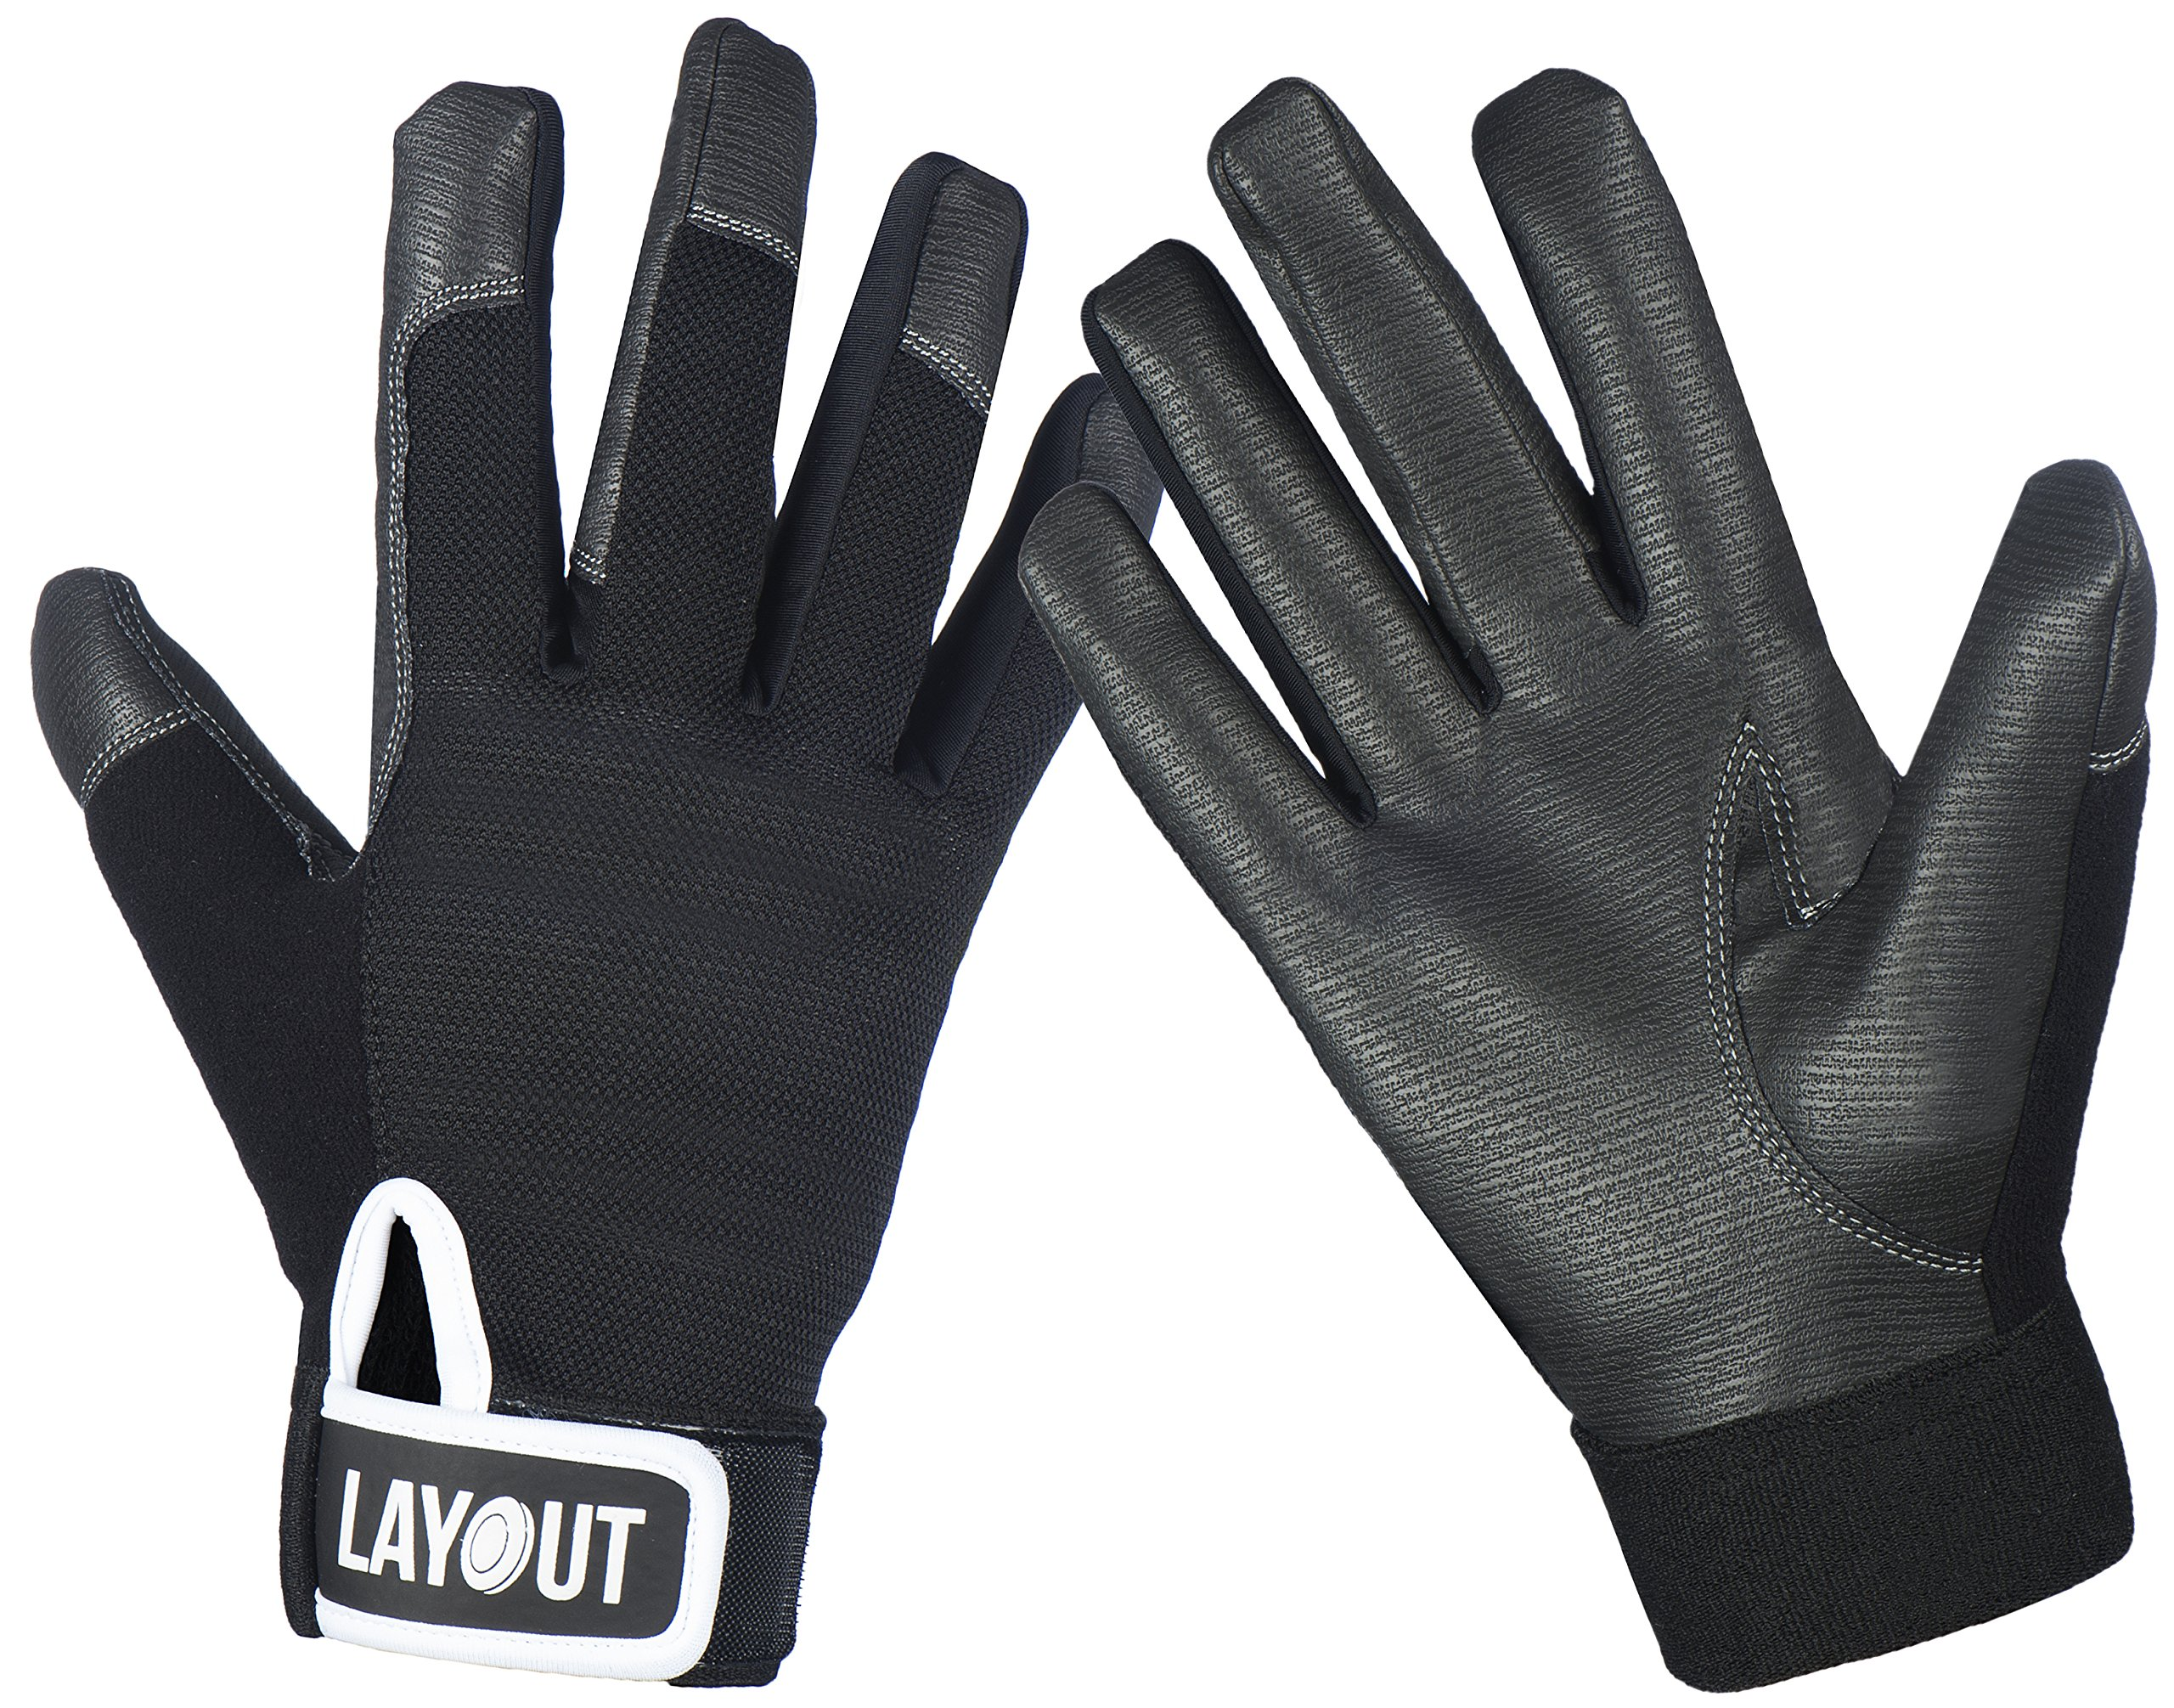 Layout Ultimate Frisbee Gloves - Ultimate Grip and Friction to Enhance Your Game! (XS)